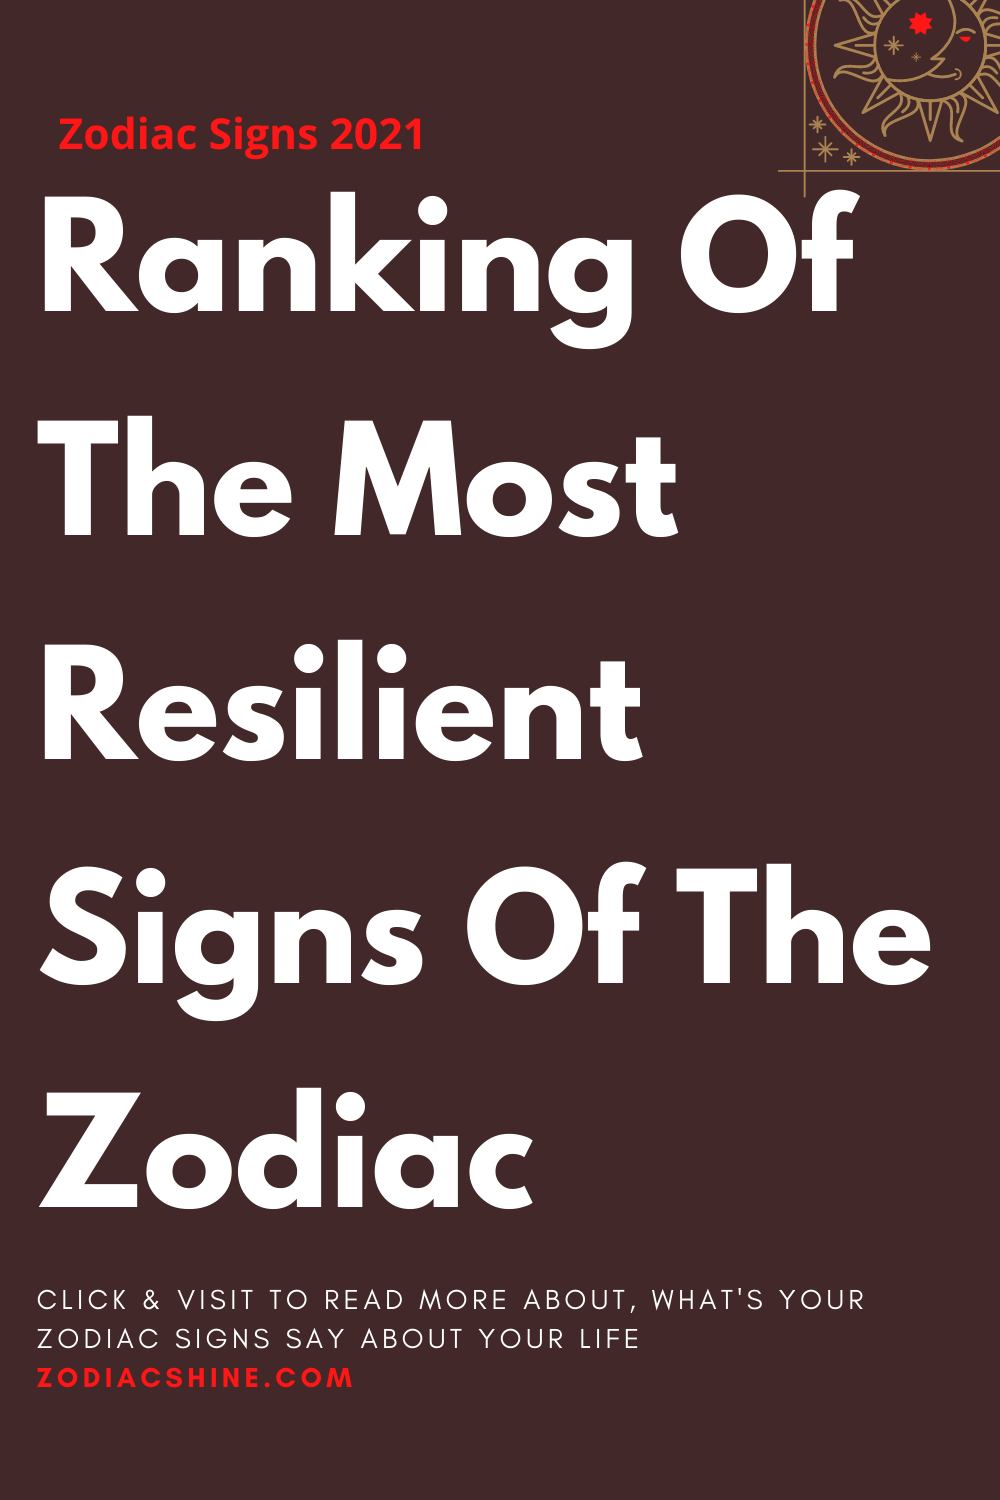 Ranking Of The Most Resilient Signs Of The Zodiac